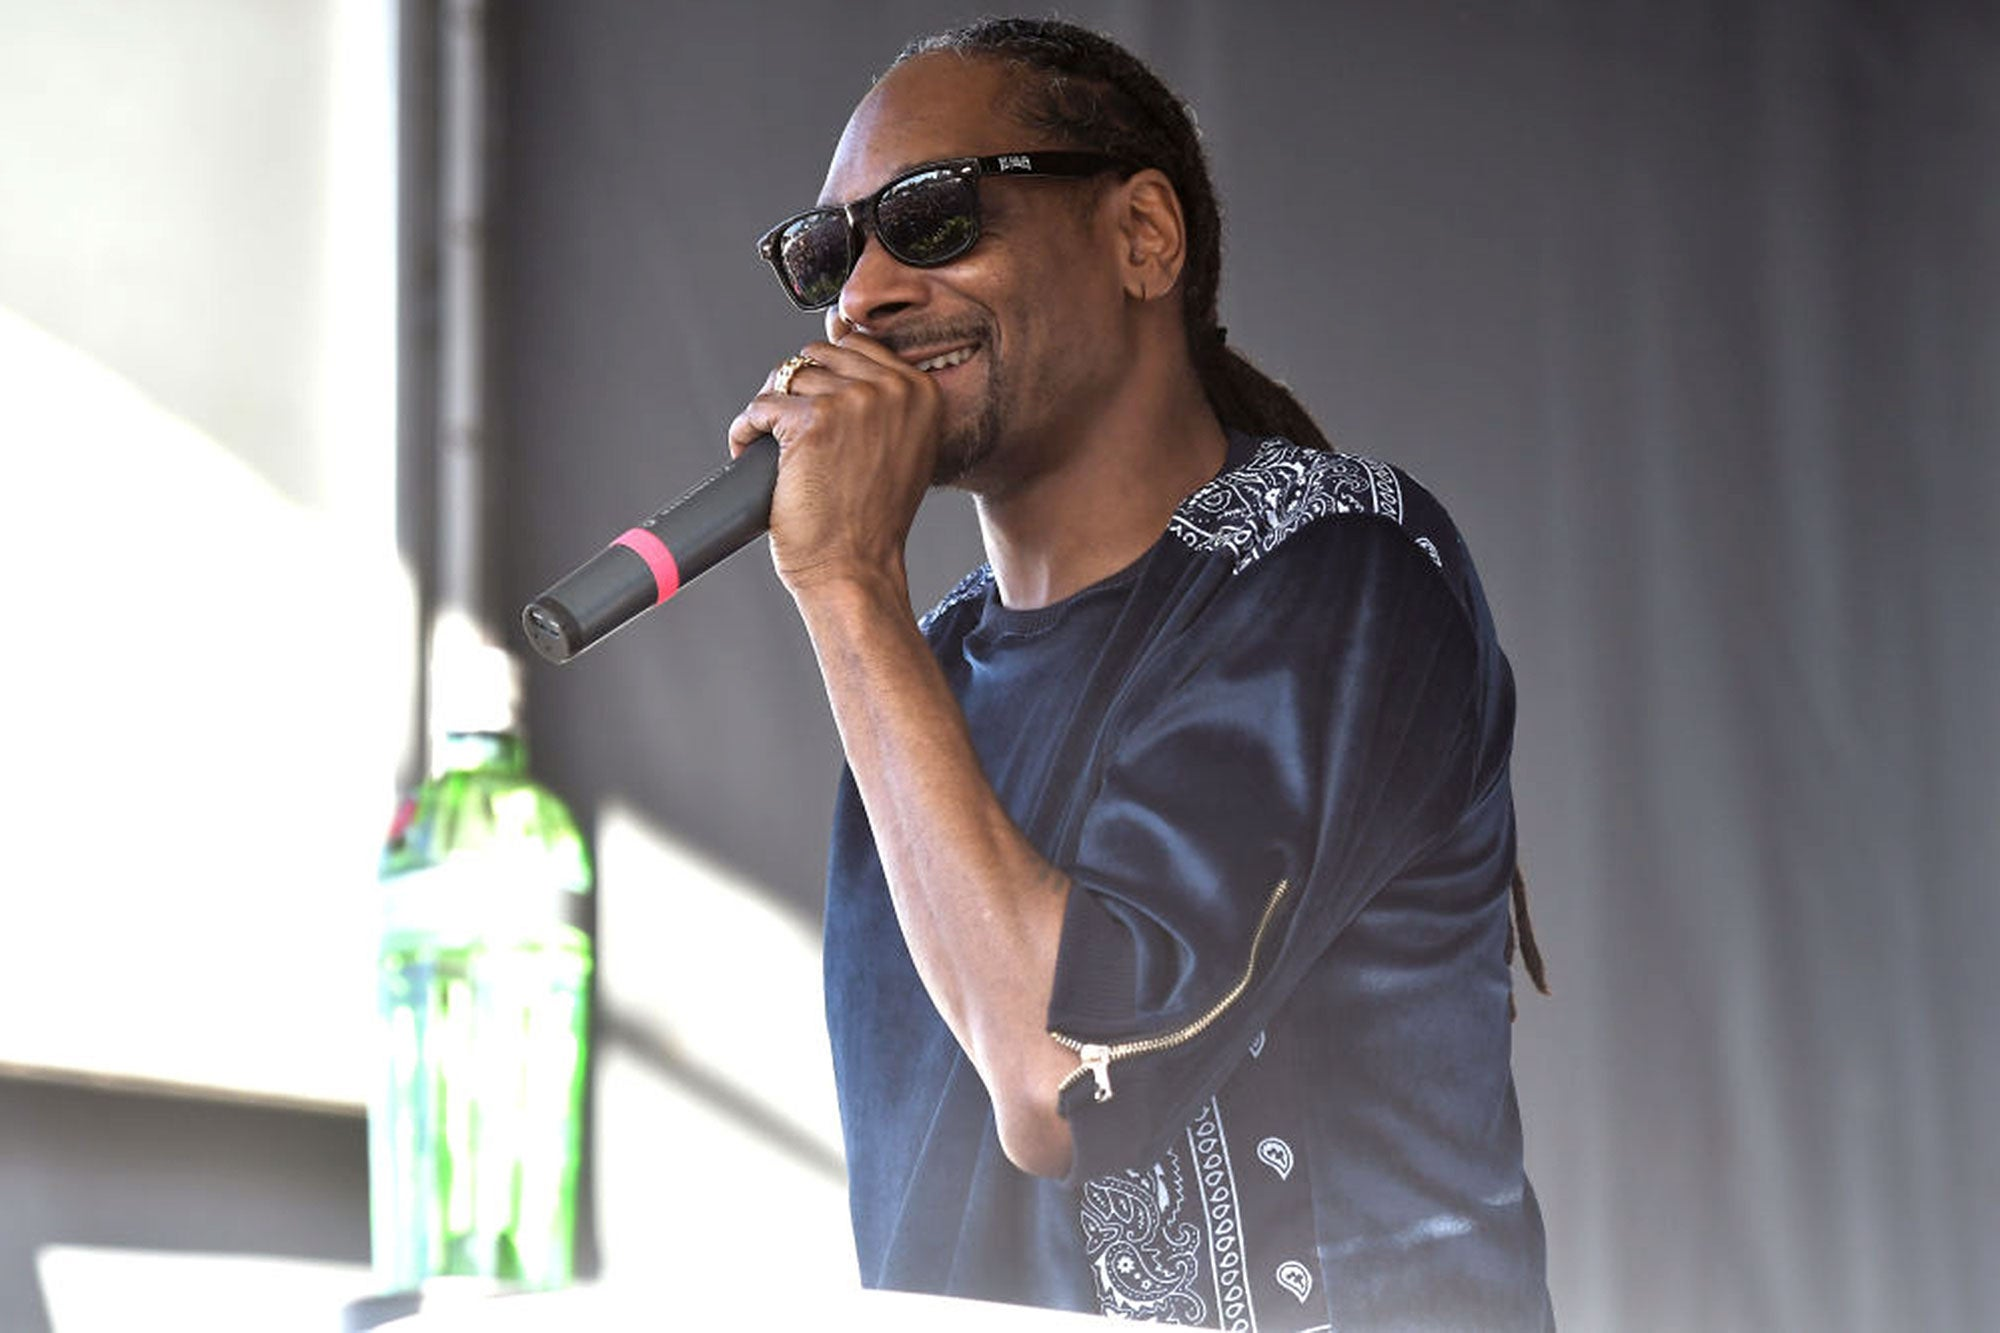 Watch Snoop Dogg's Sign Language Interpreter Steal The Show At Concert